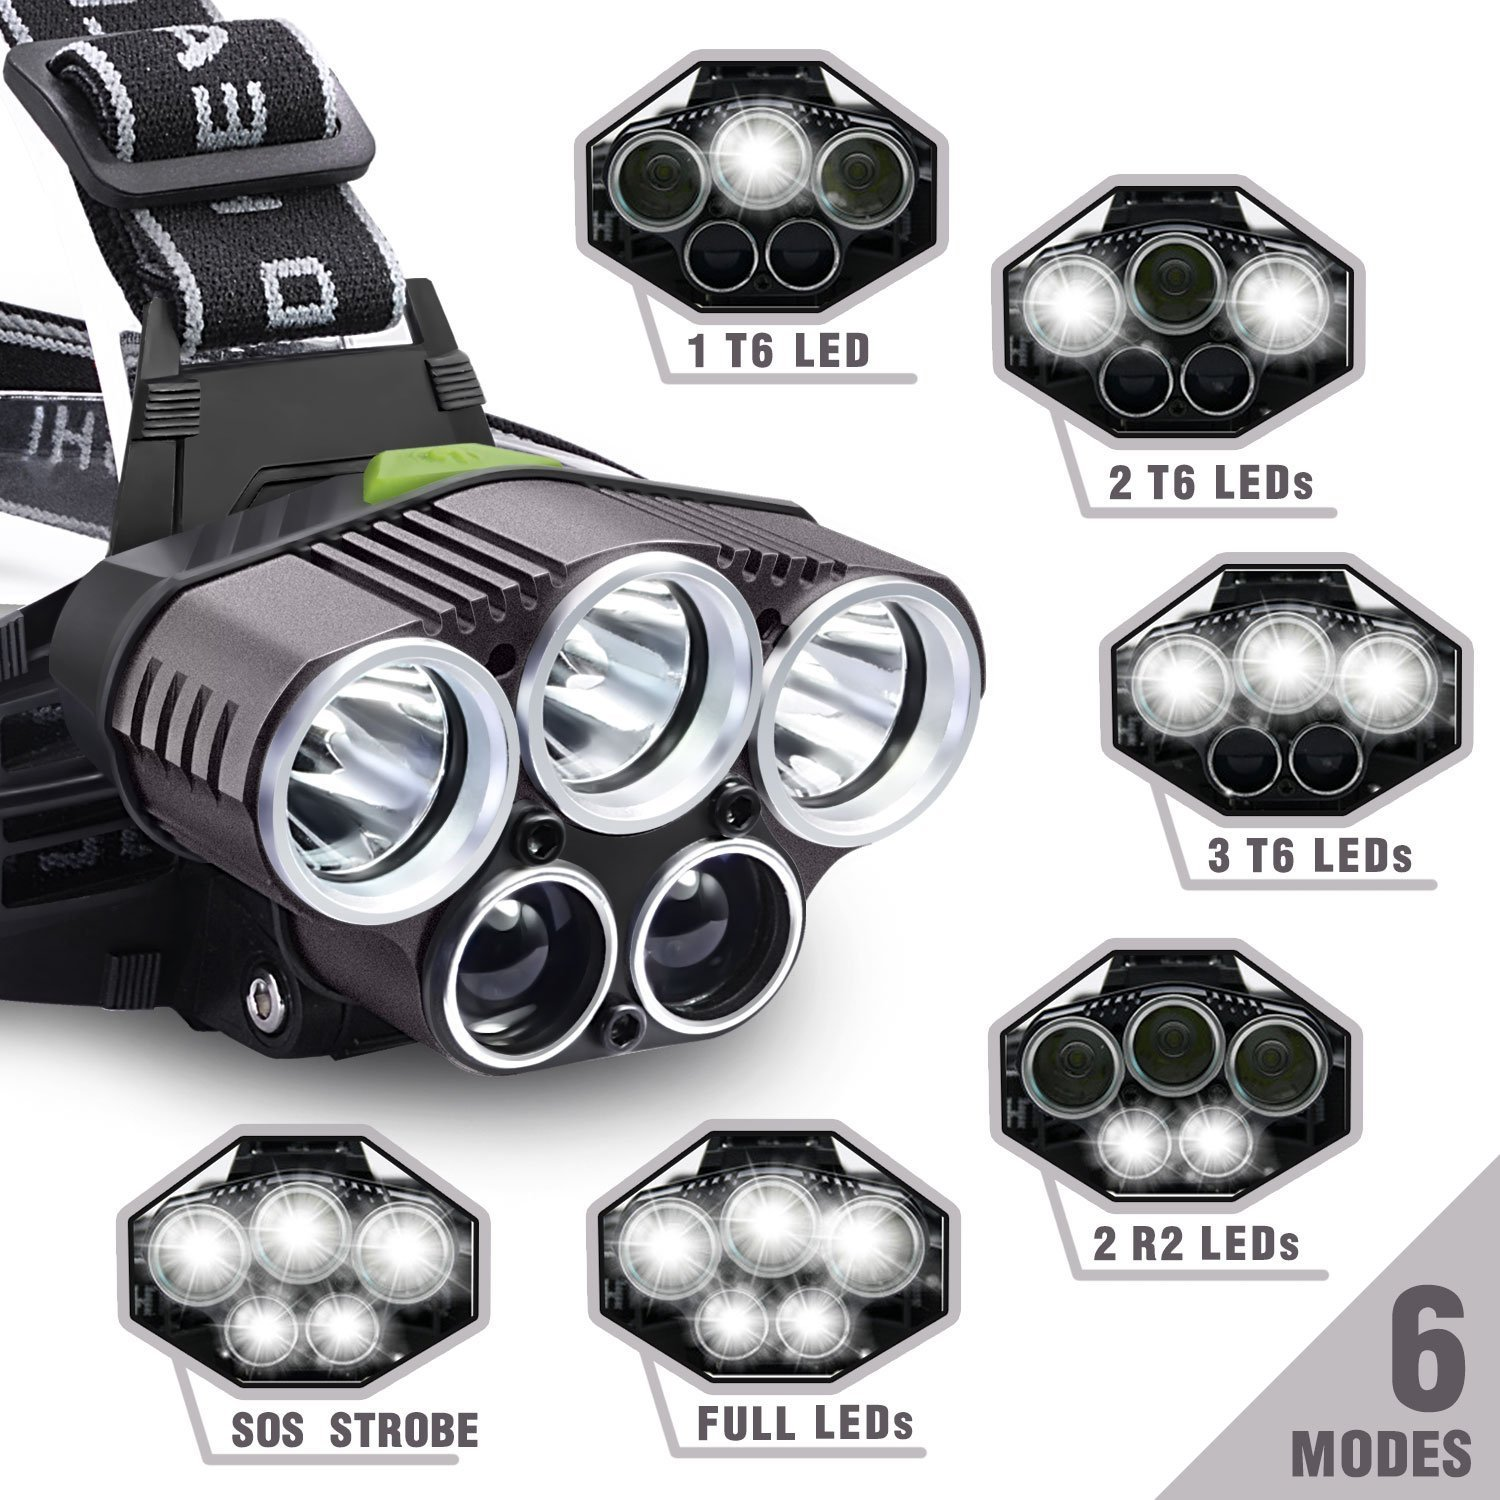 EAGY Headlamp, 5000 Lumen CREE LED Work Headlight,18650 Rechargeable Waterproof Flashlight with 6 Modes Zoomable Work Light,Best Head Lights for Camping Running Hiking by EAGY (Image #2)